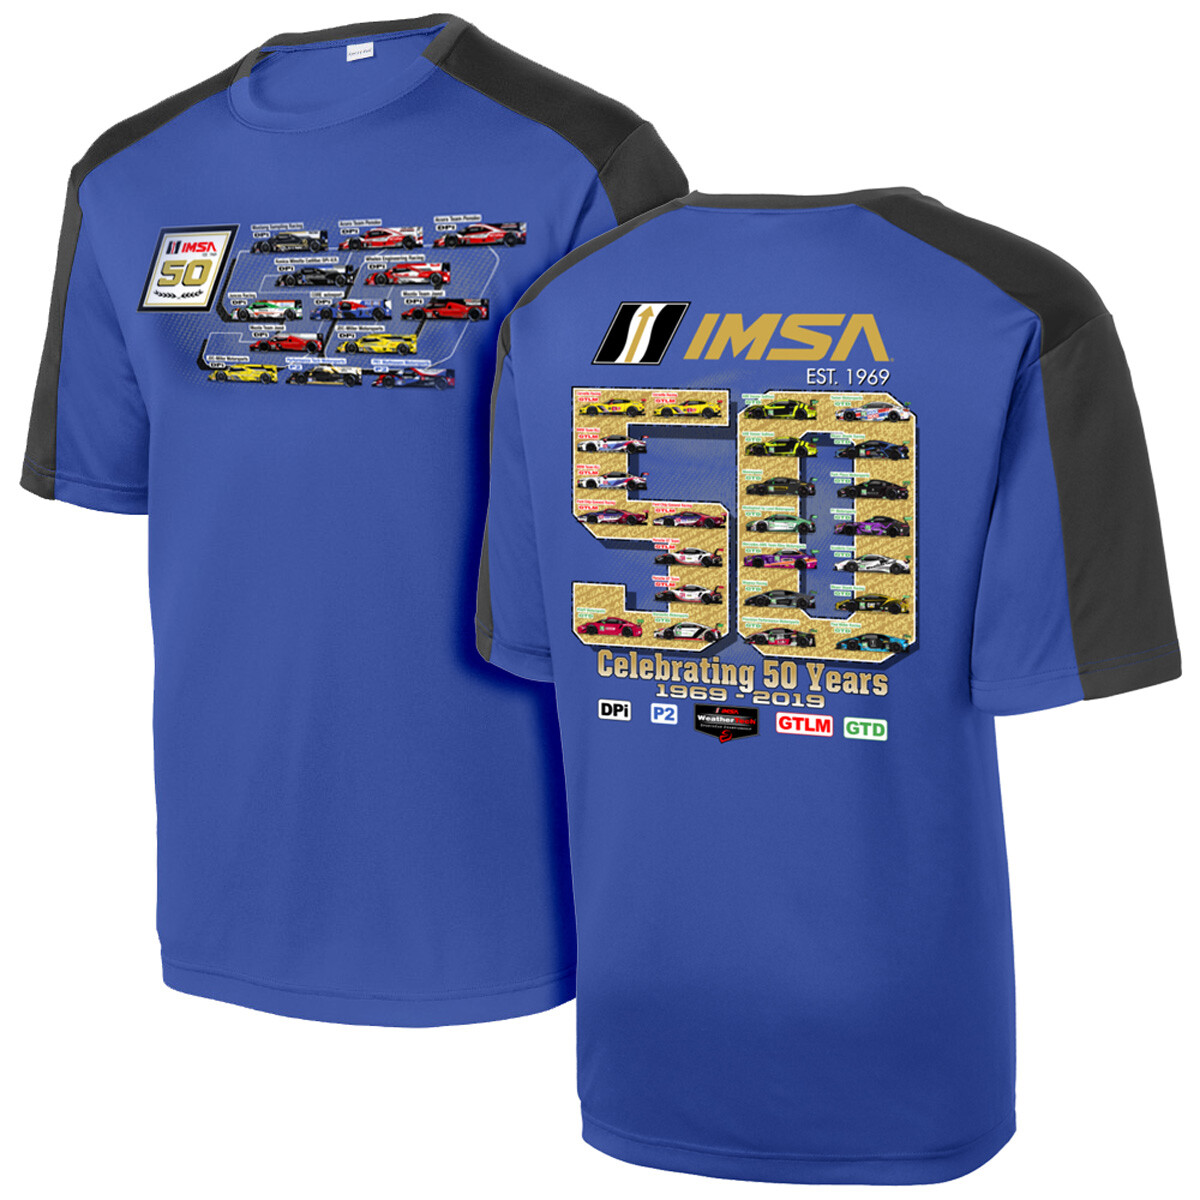 IMSA 50th Anniversary Car Spotter Tee - Royal/Black